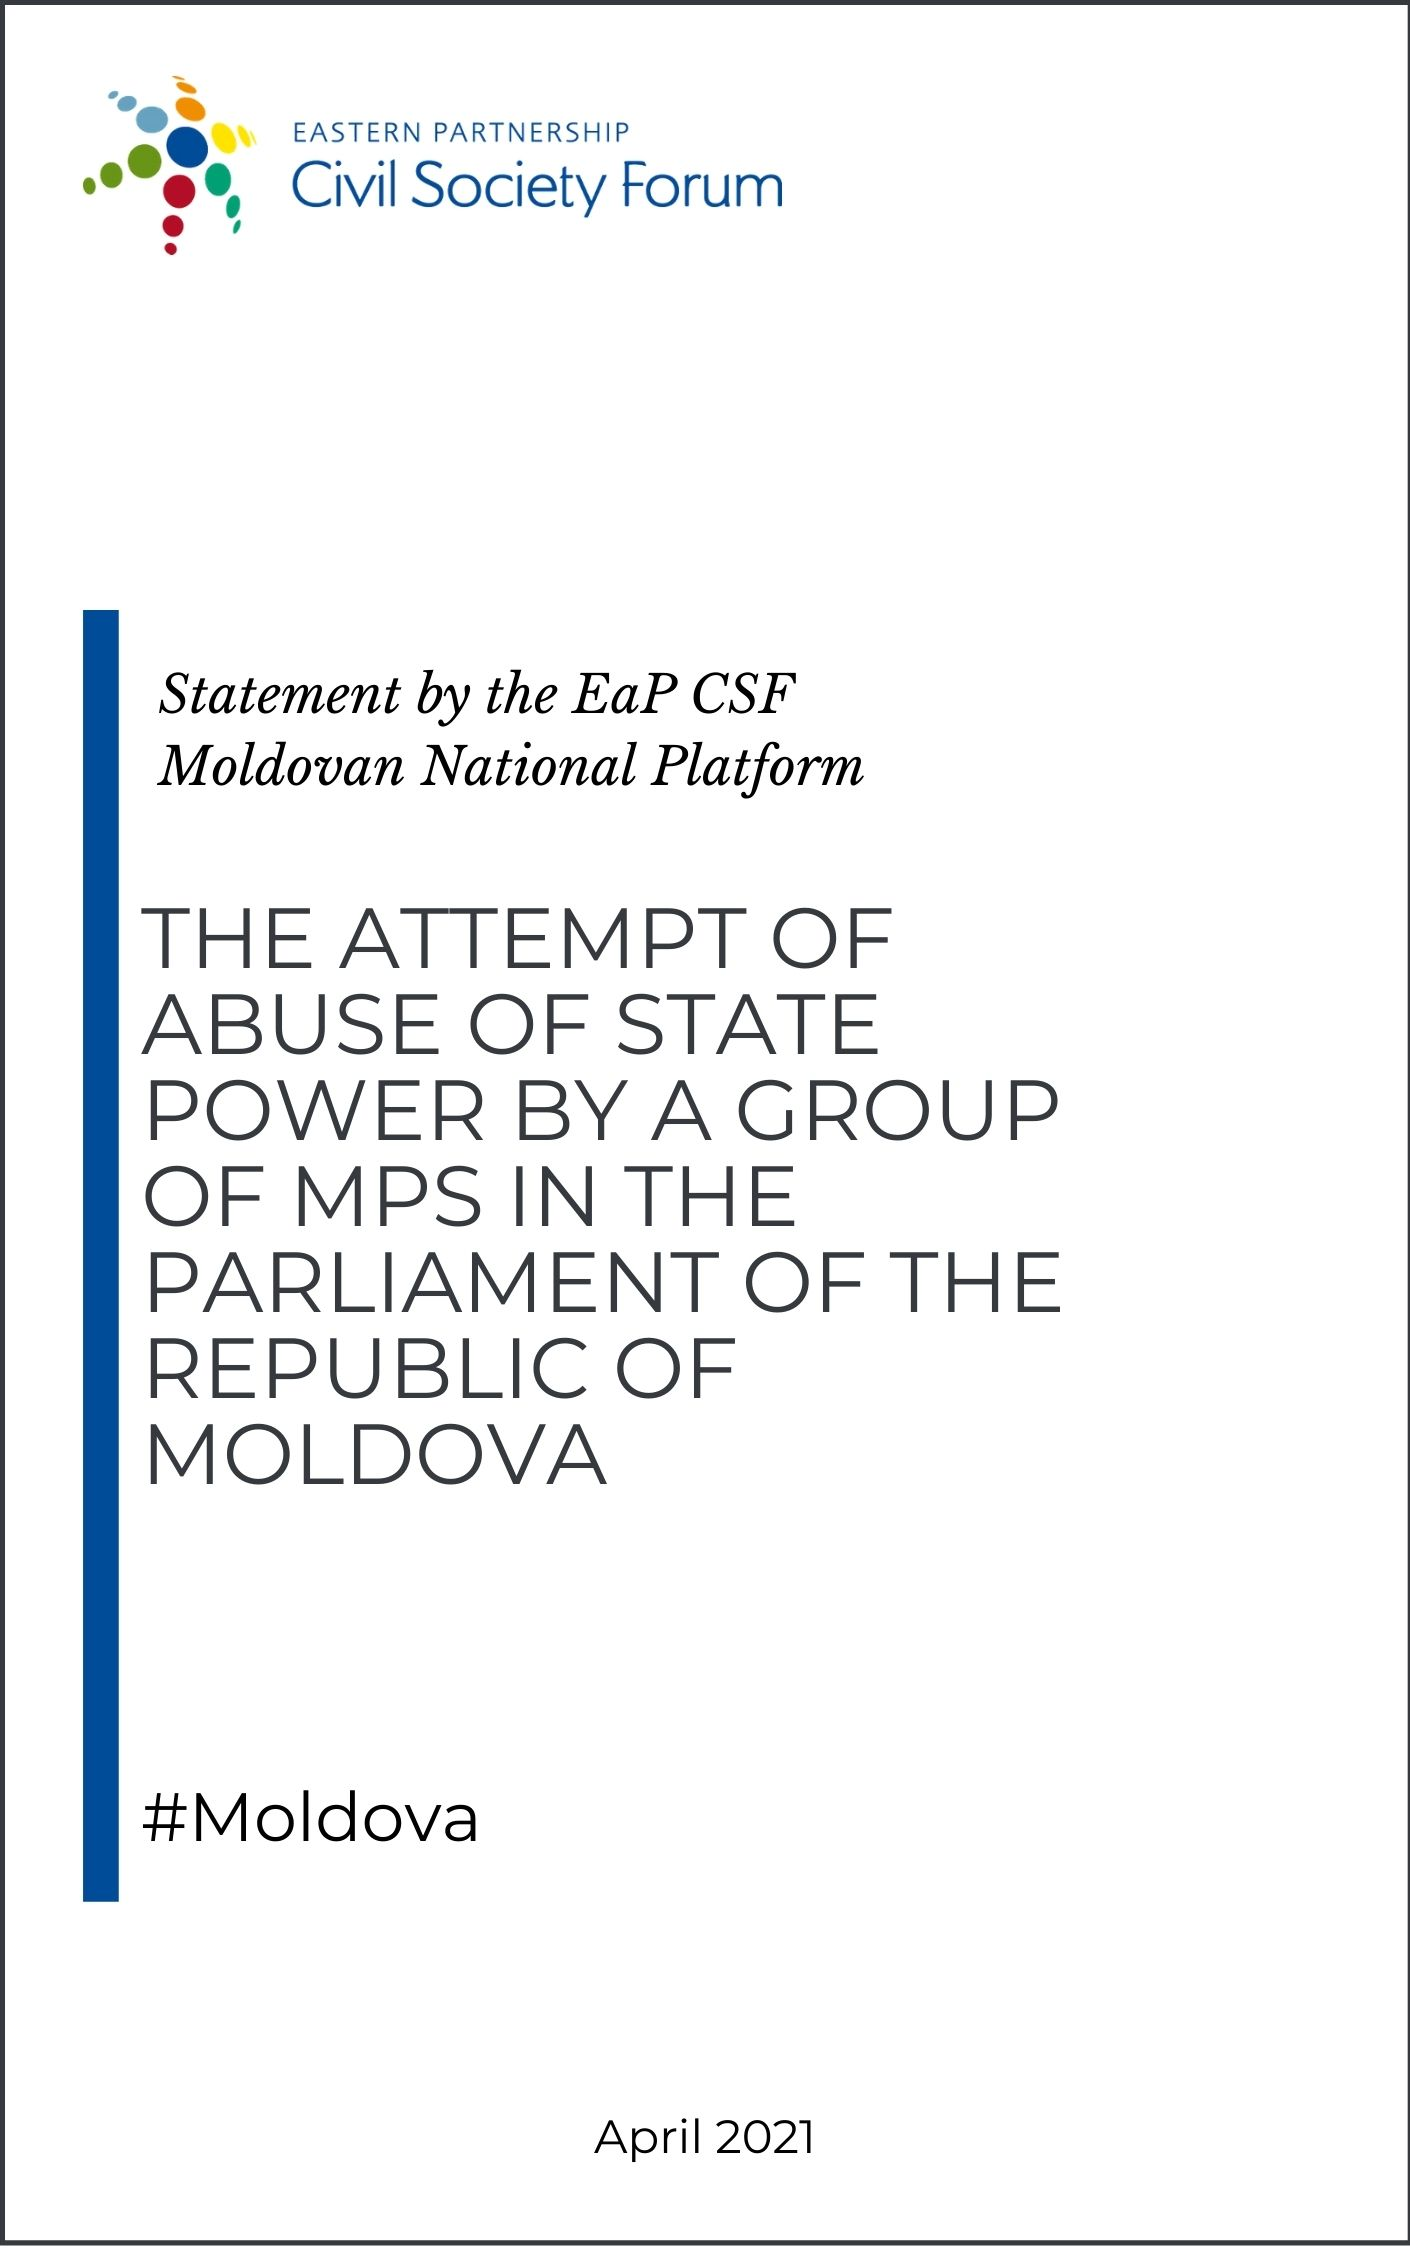 Public Appeal of the Moldovan NP the attempt of abuse of state power by a group of MPs in the parliament of the Republic of Moldova